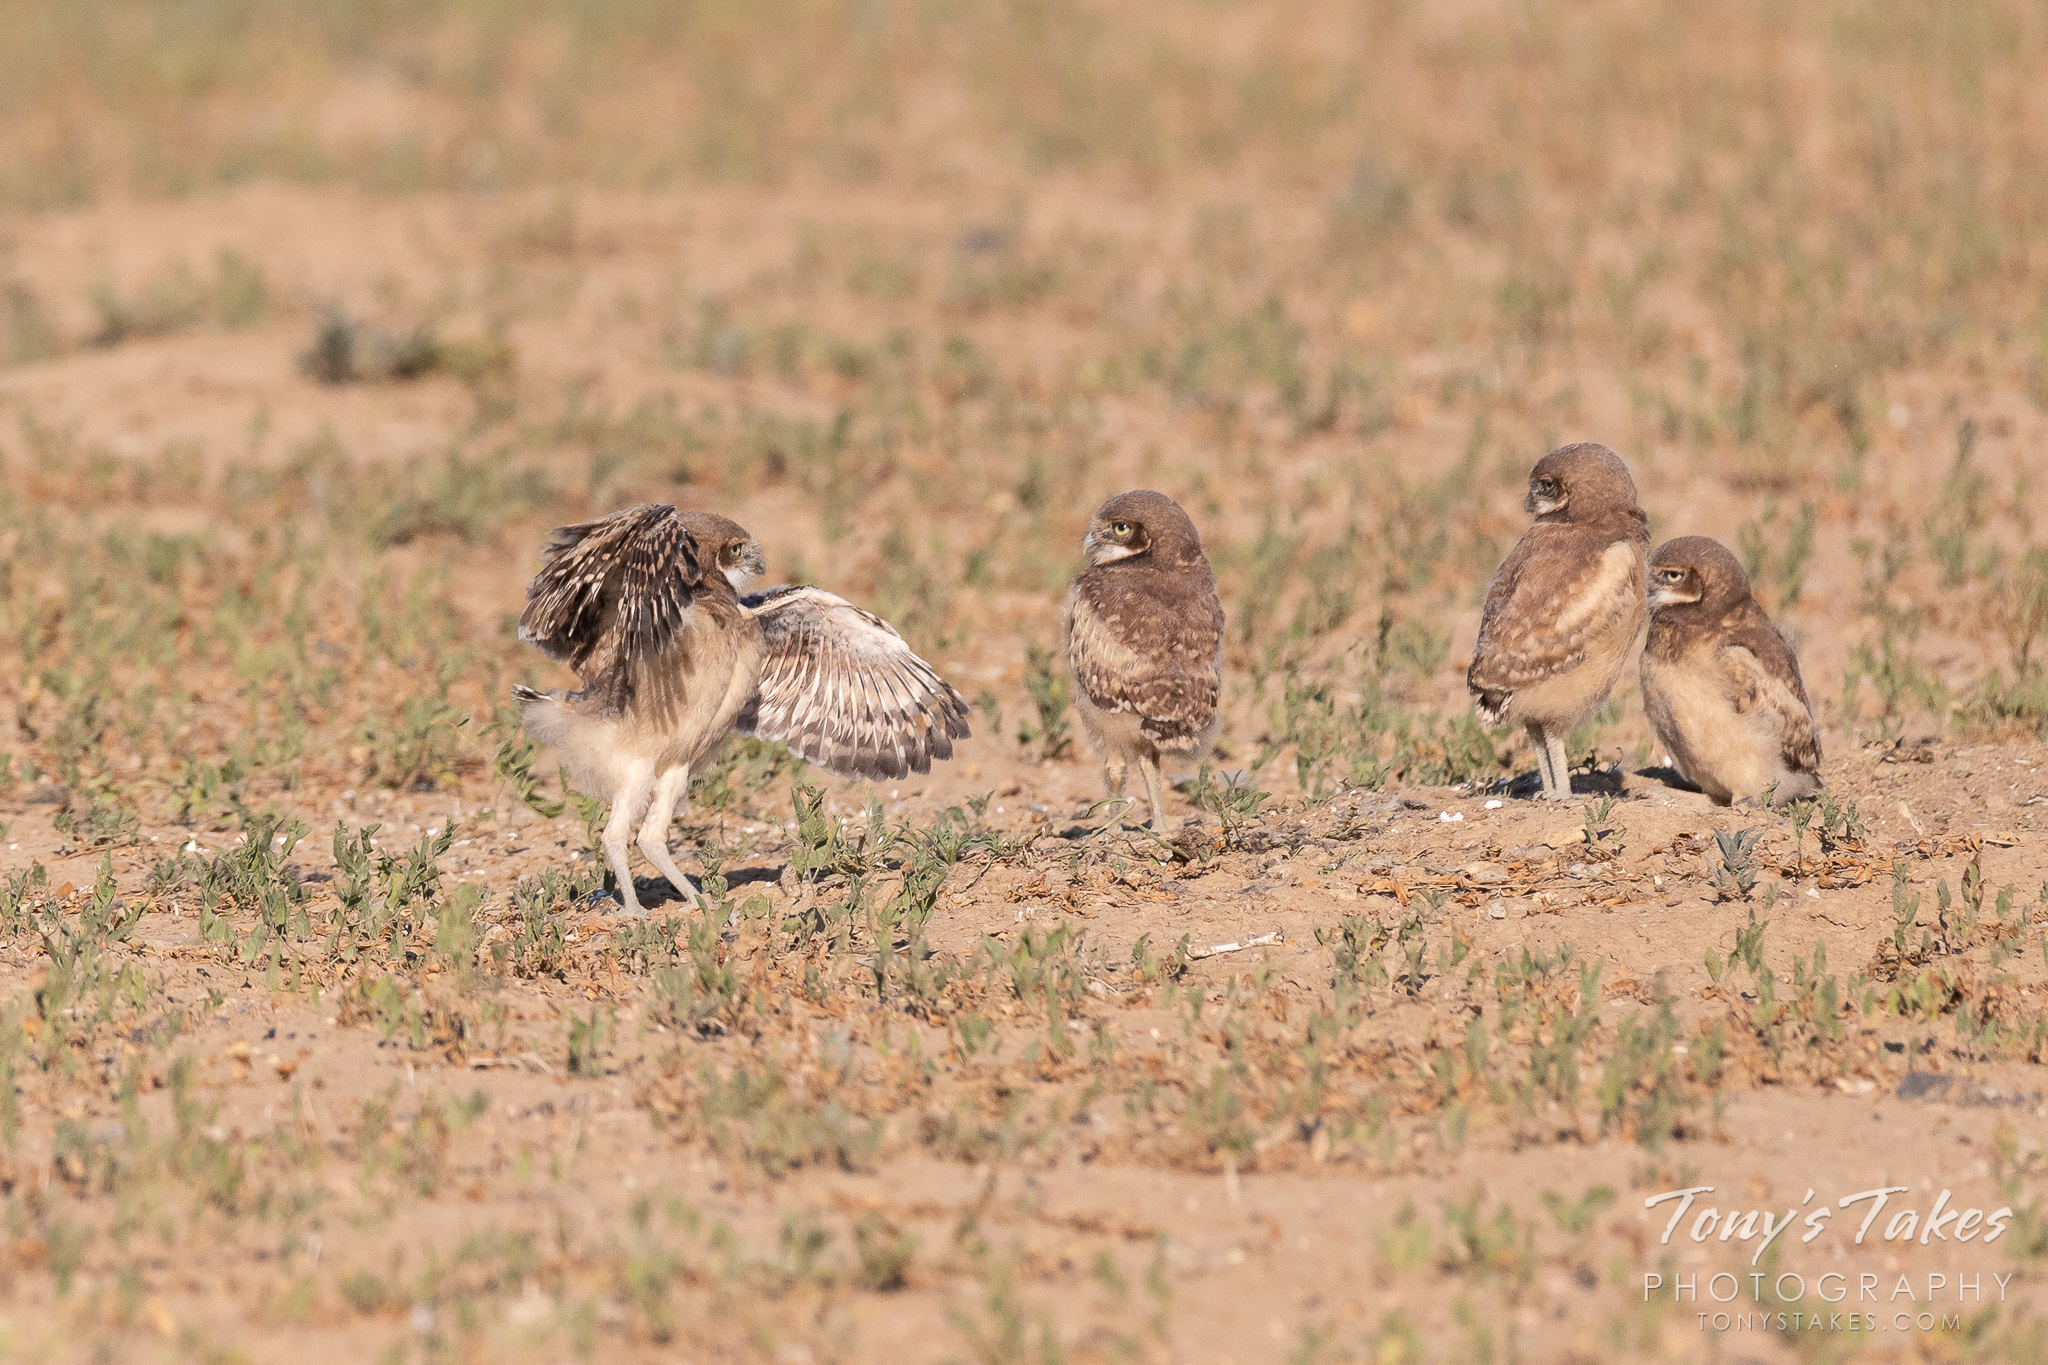 A Burrowing Owl owlet tests out its wings while its siblings look on. (© Tony's Takes)